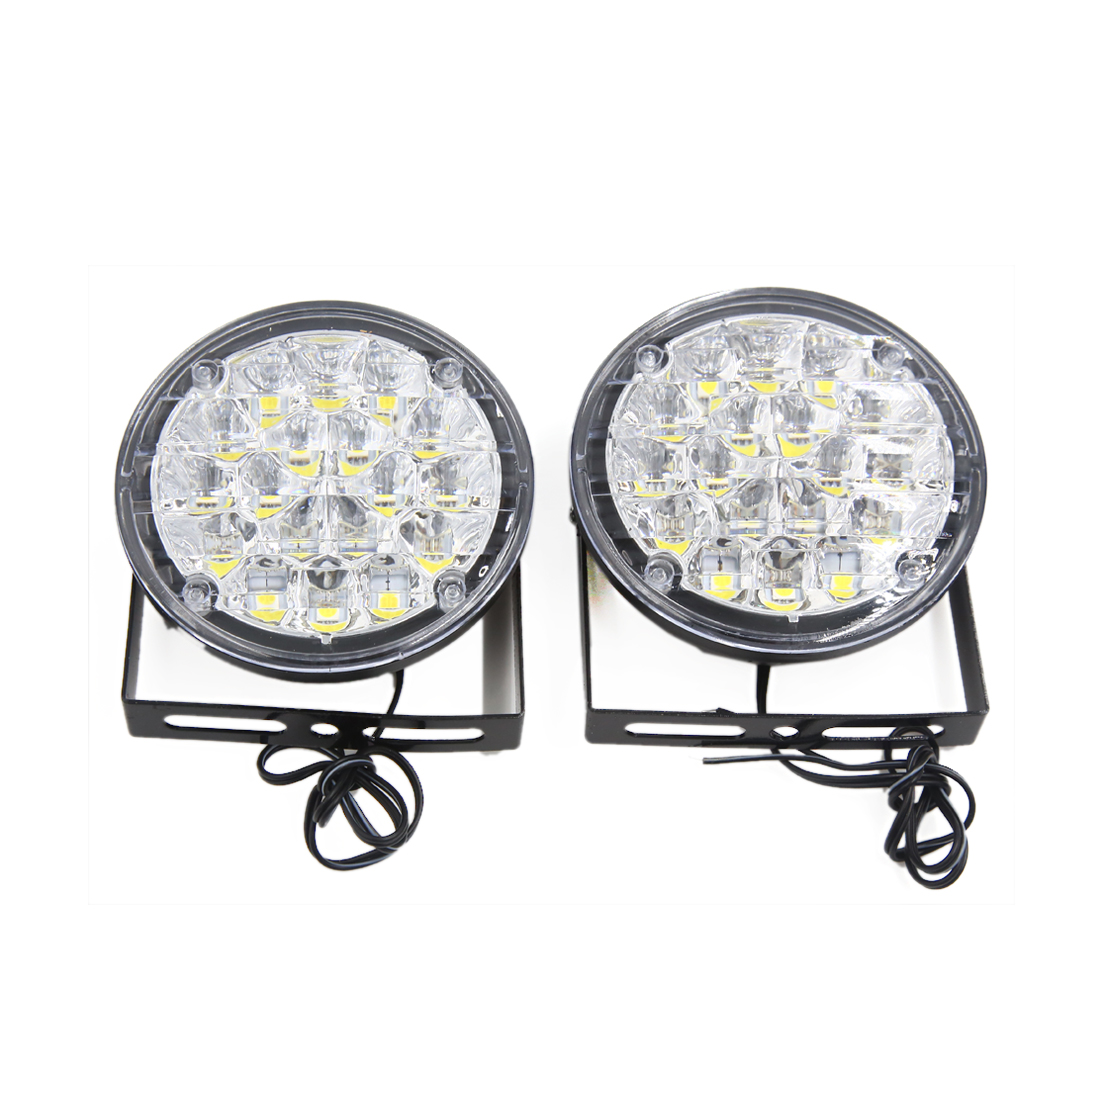 2Pcs 12V 18LED Round Car Lamp Driving Daytime Running Light Bright White